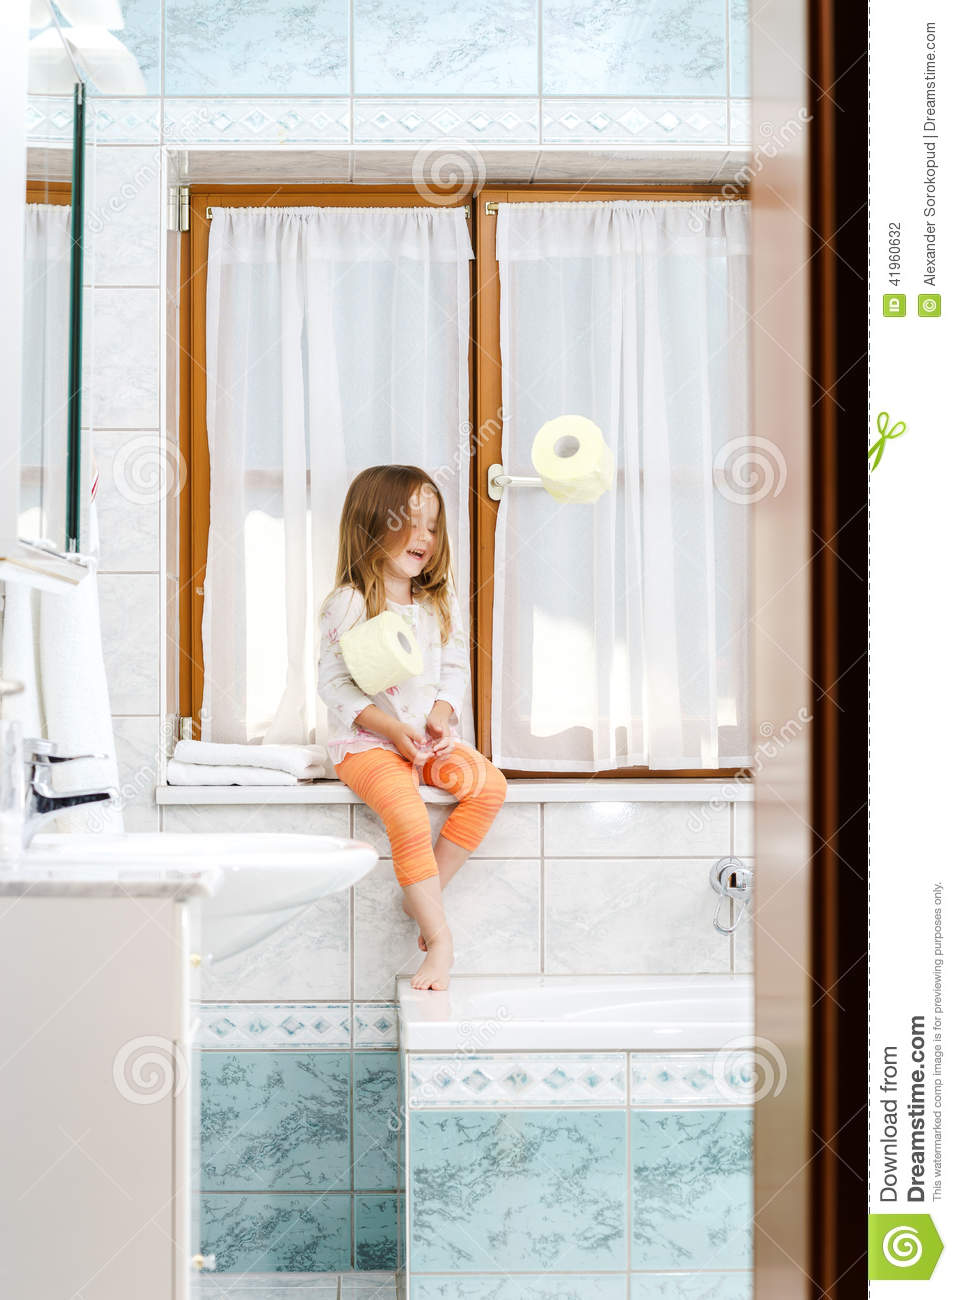 Cute Little Girl Playing With Toilet Paper Roll In A Bathroom